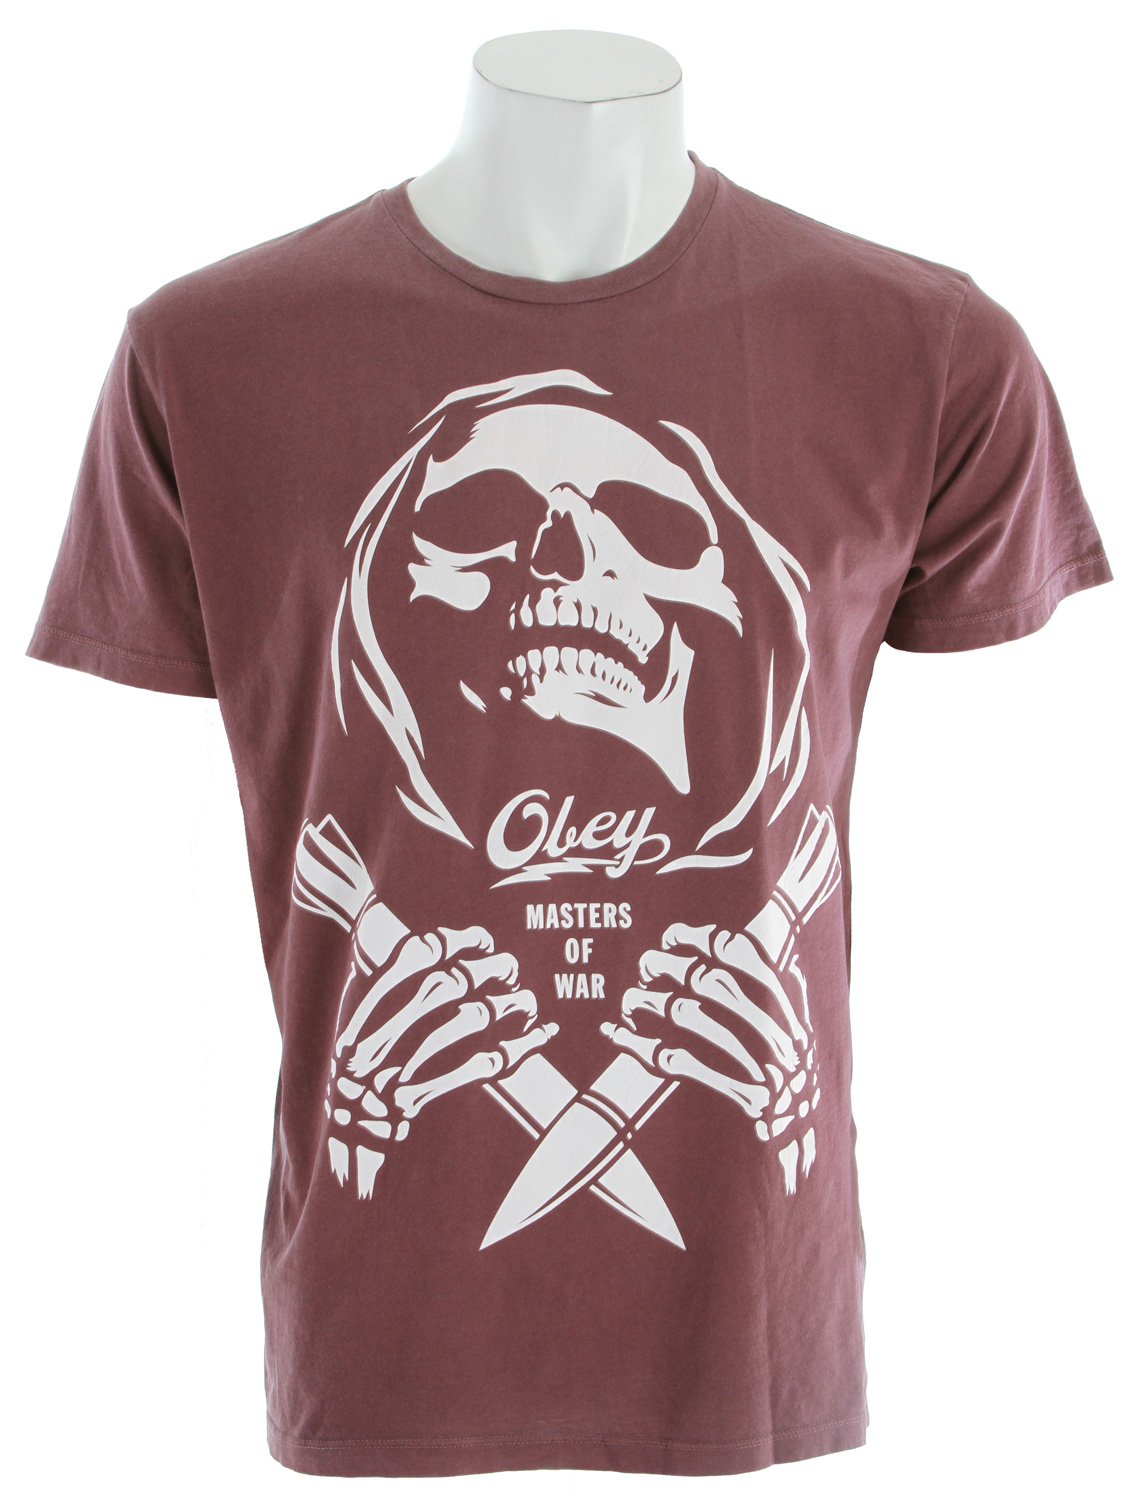 Key Features of The Obey Masters Of War T-Shirt: Slim Fit Crew Neck Short Sleeve Lightweight, with inset crew neck and pigment dye for a smooth hand 100% Cotton - $28.95